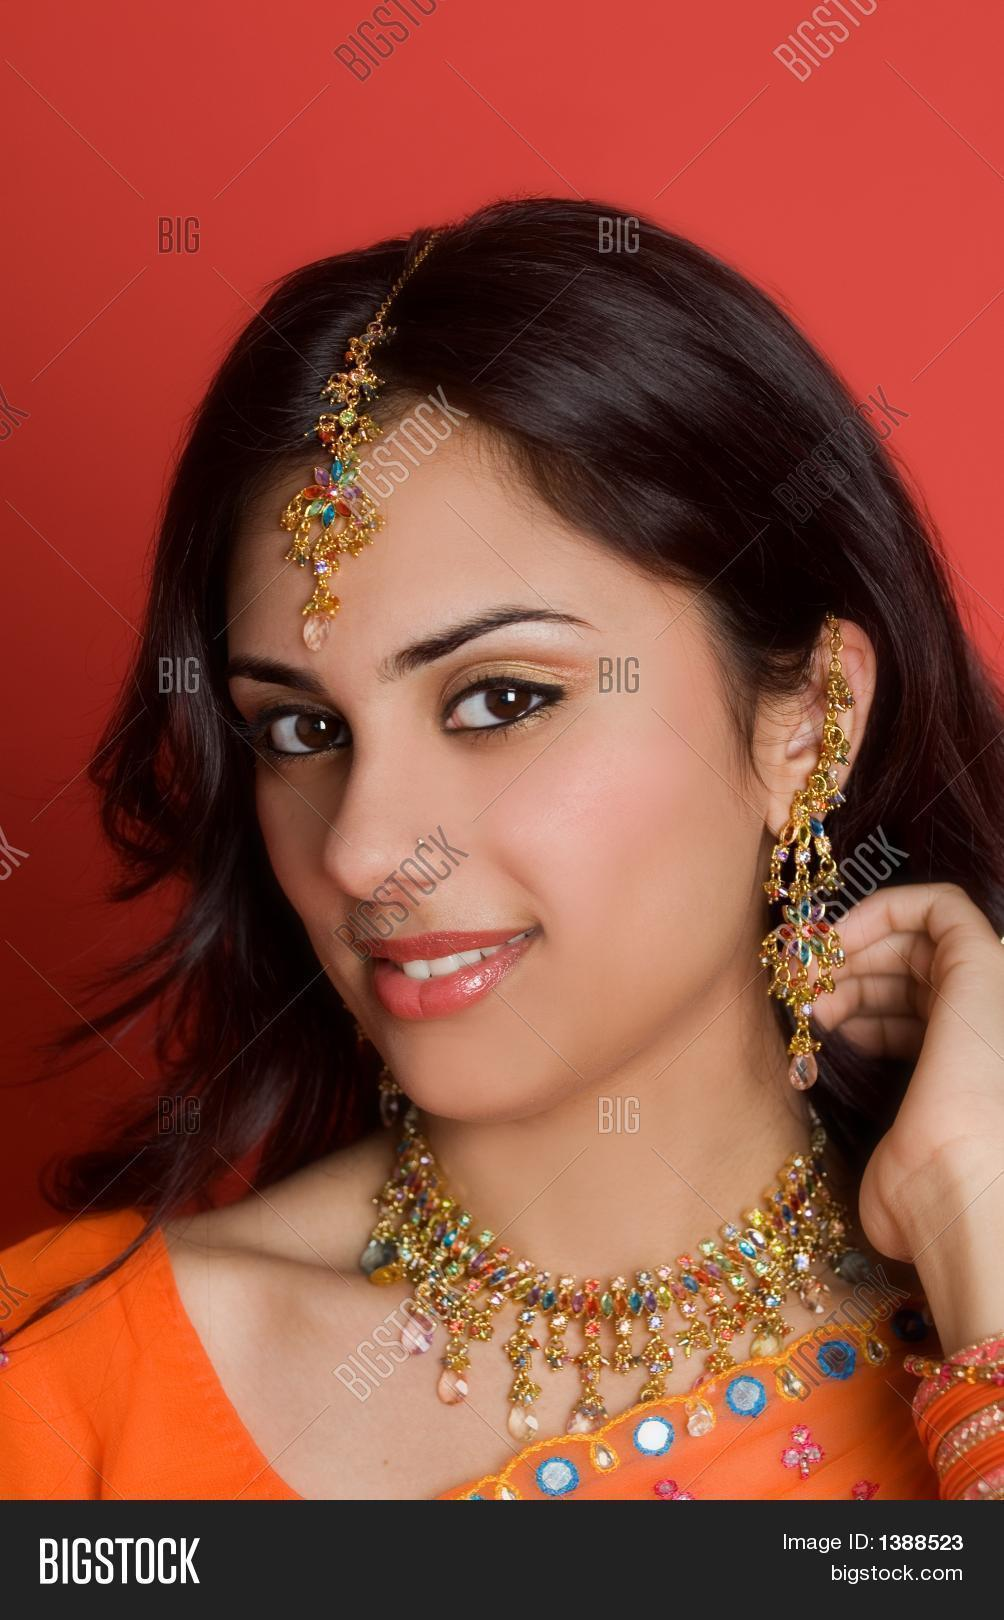 hindu single women in doyline Free to join & browse - 1000's of indian women in trinidad and tobago - interracial dating, relationships & marriage with ladies & females online.